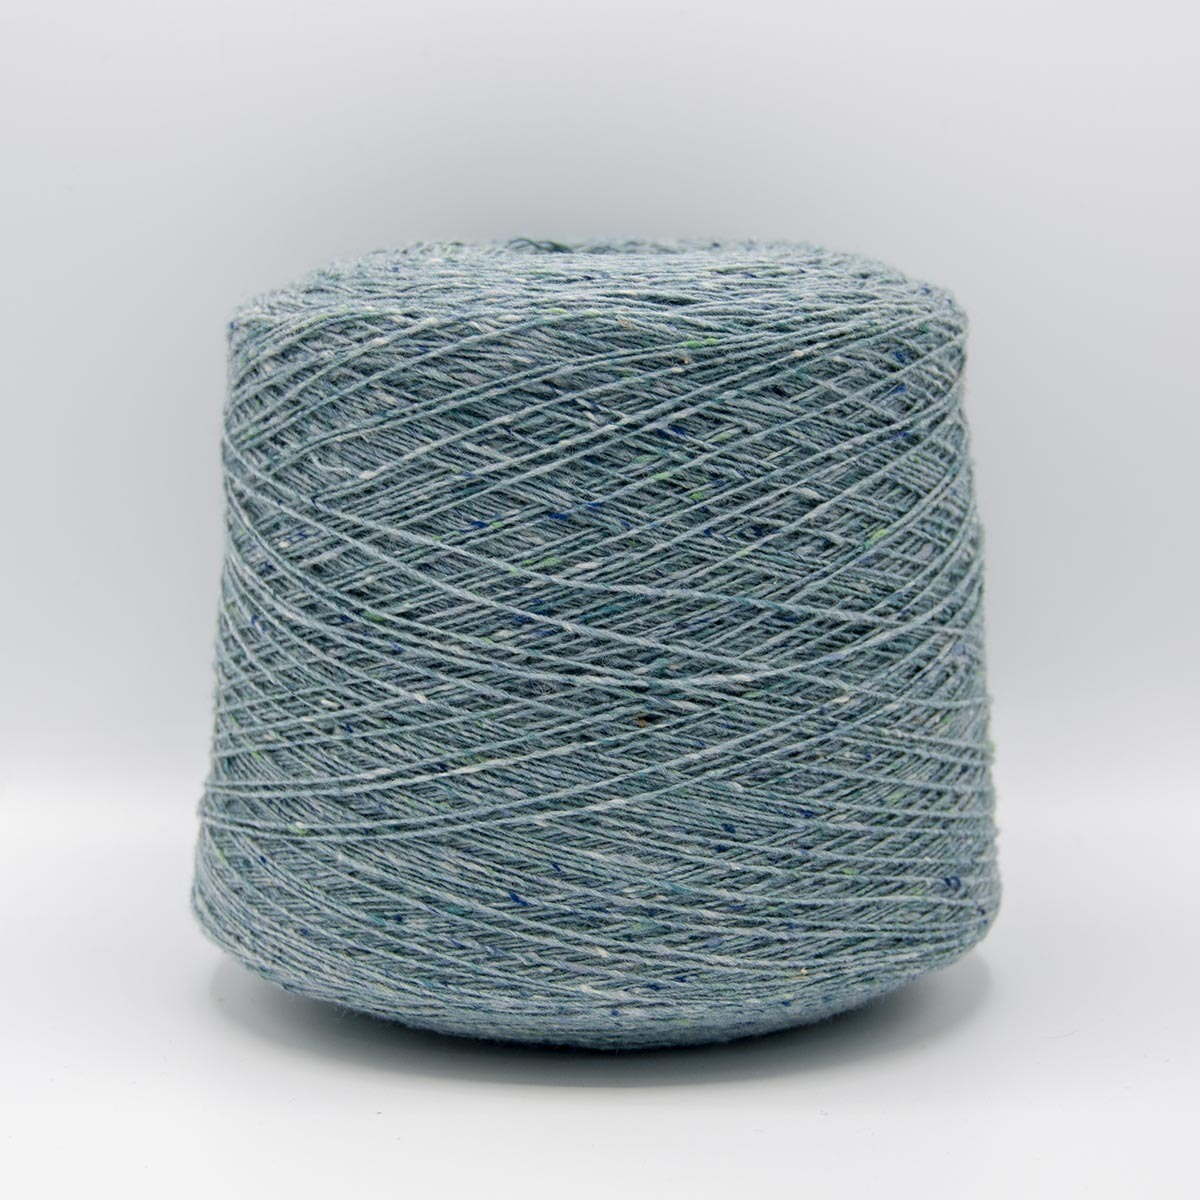 Knoll Yarns Soft Donegal (одинарный твид) - 5519